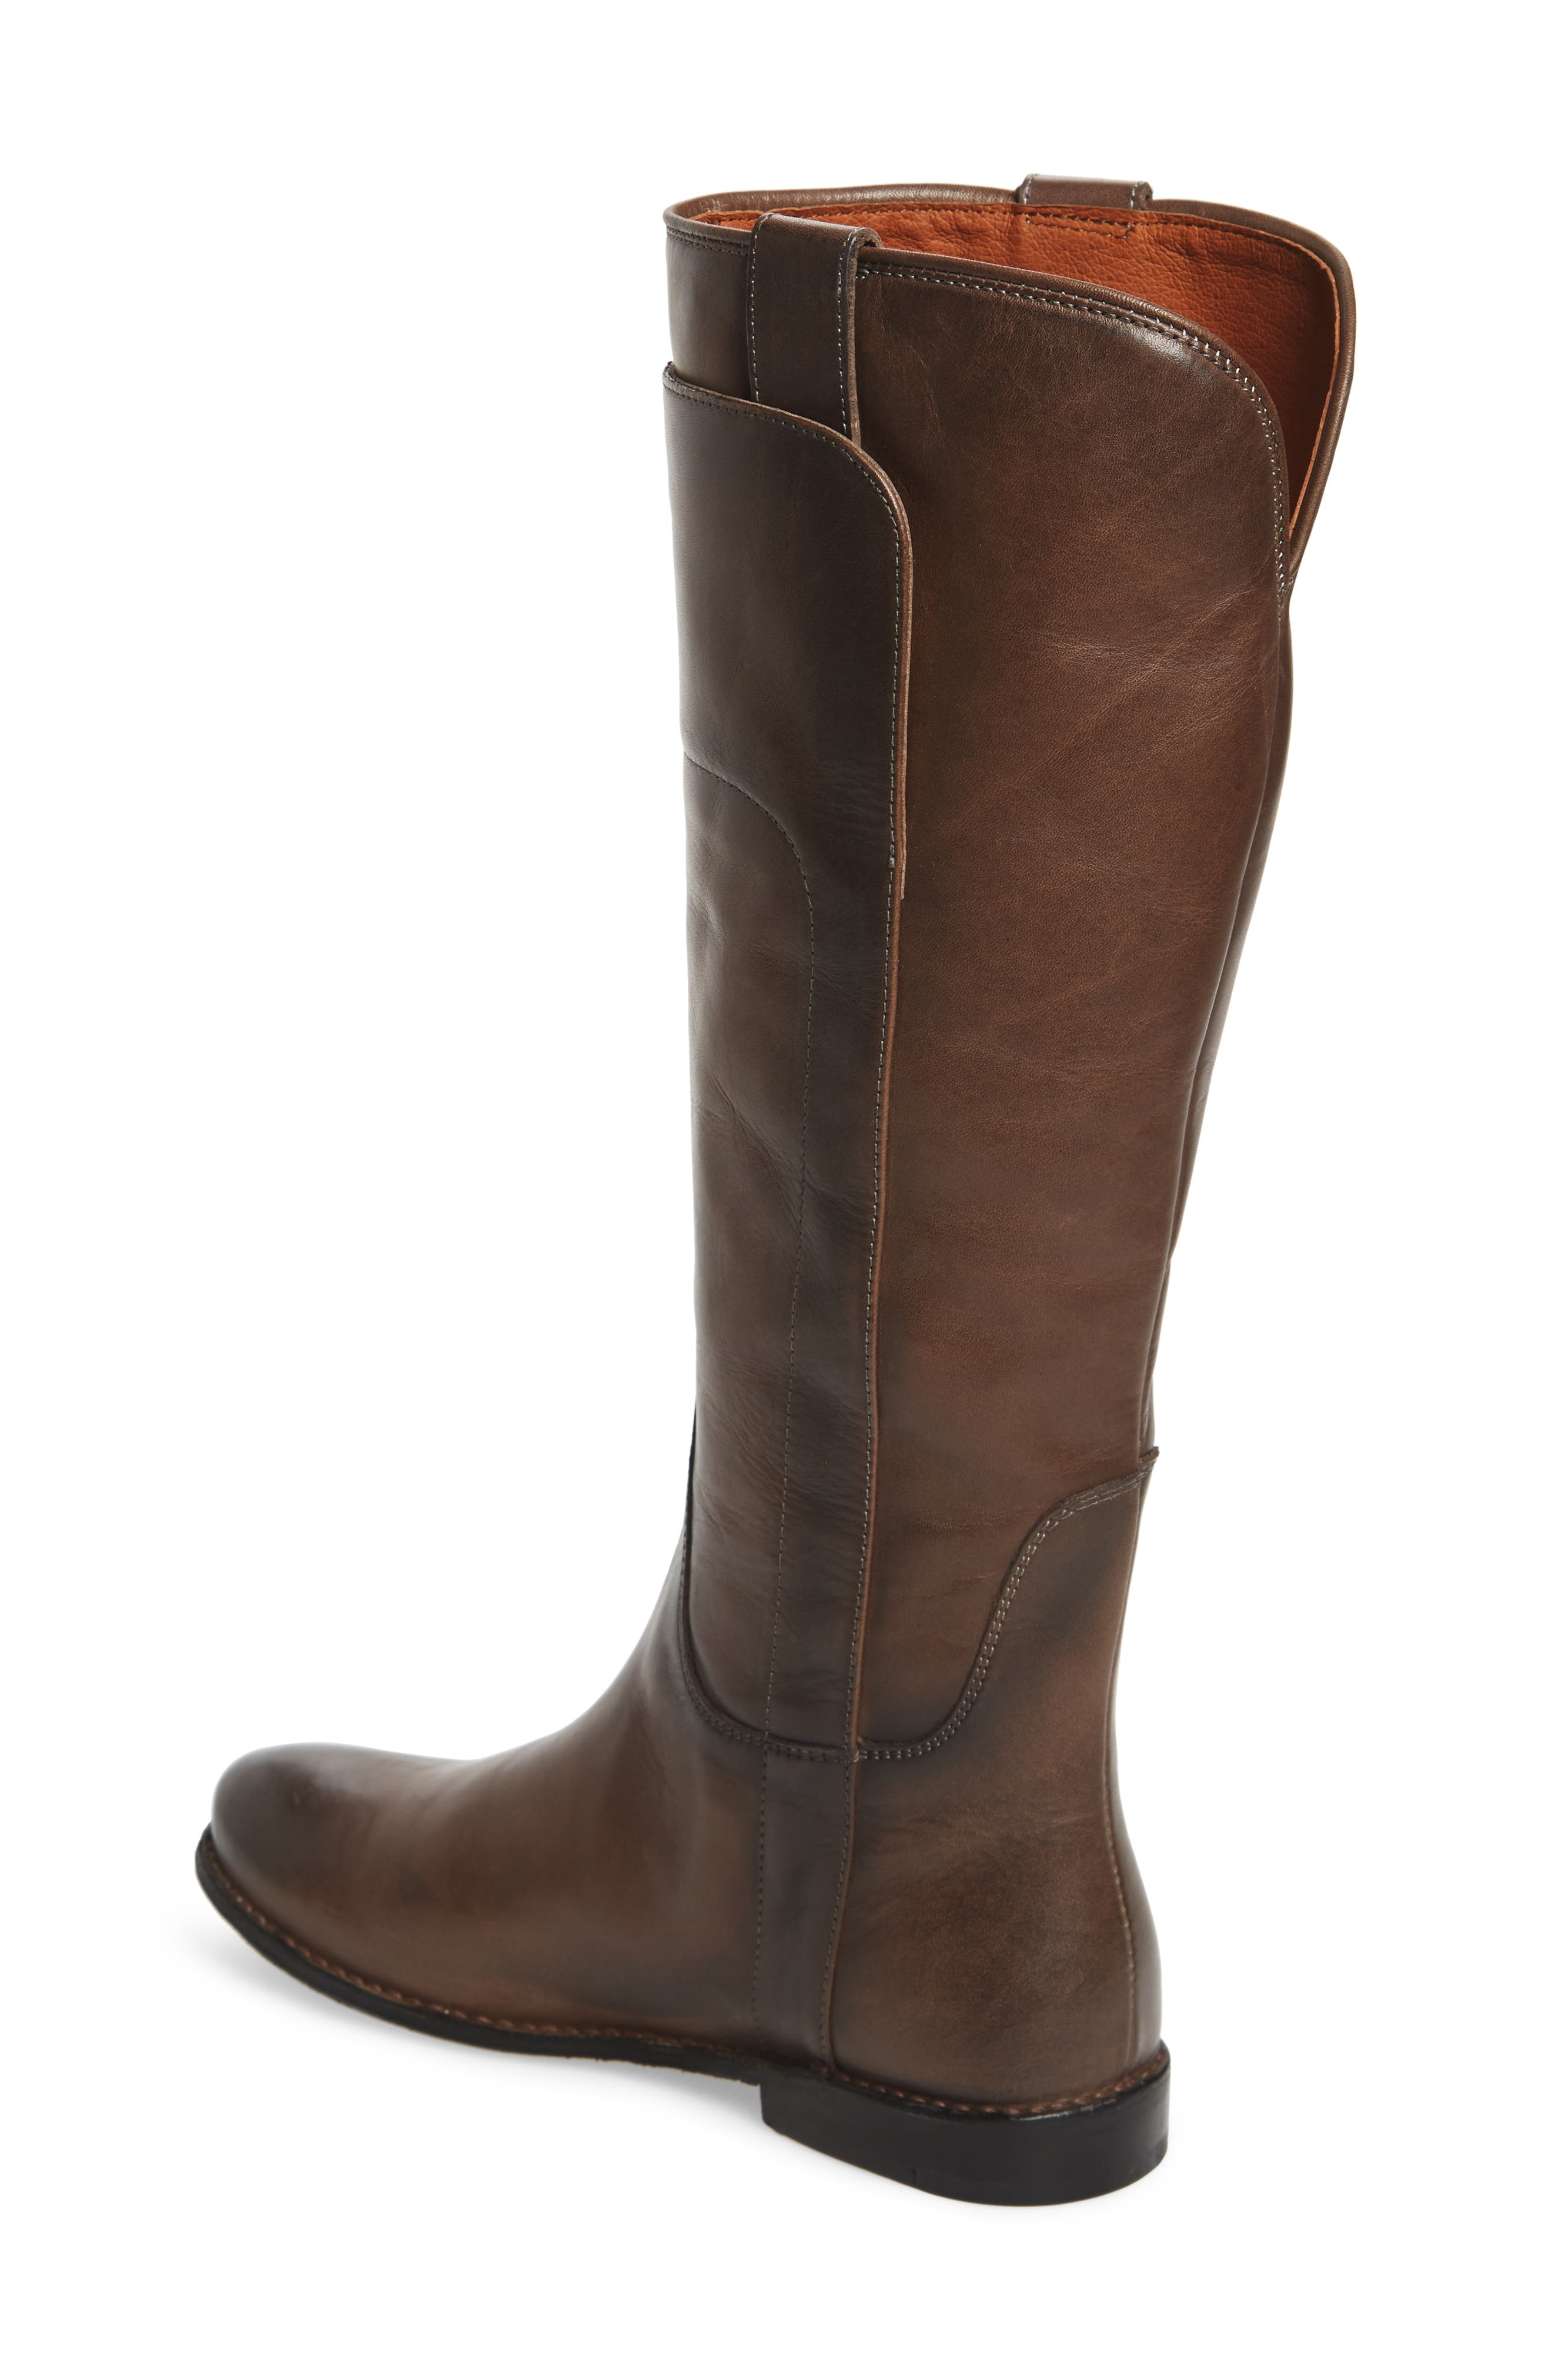 Paige Tall Riding Boot,                             Alternate thumbnail 2, color,                             020